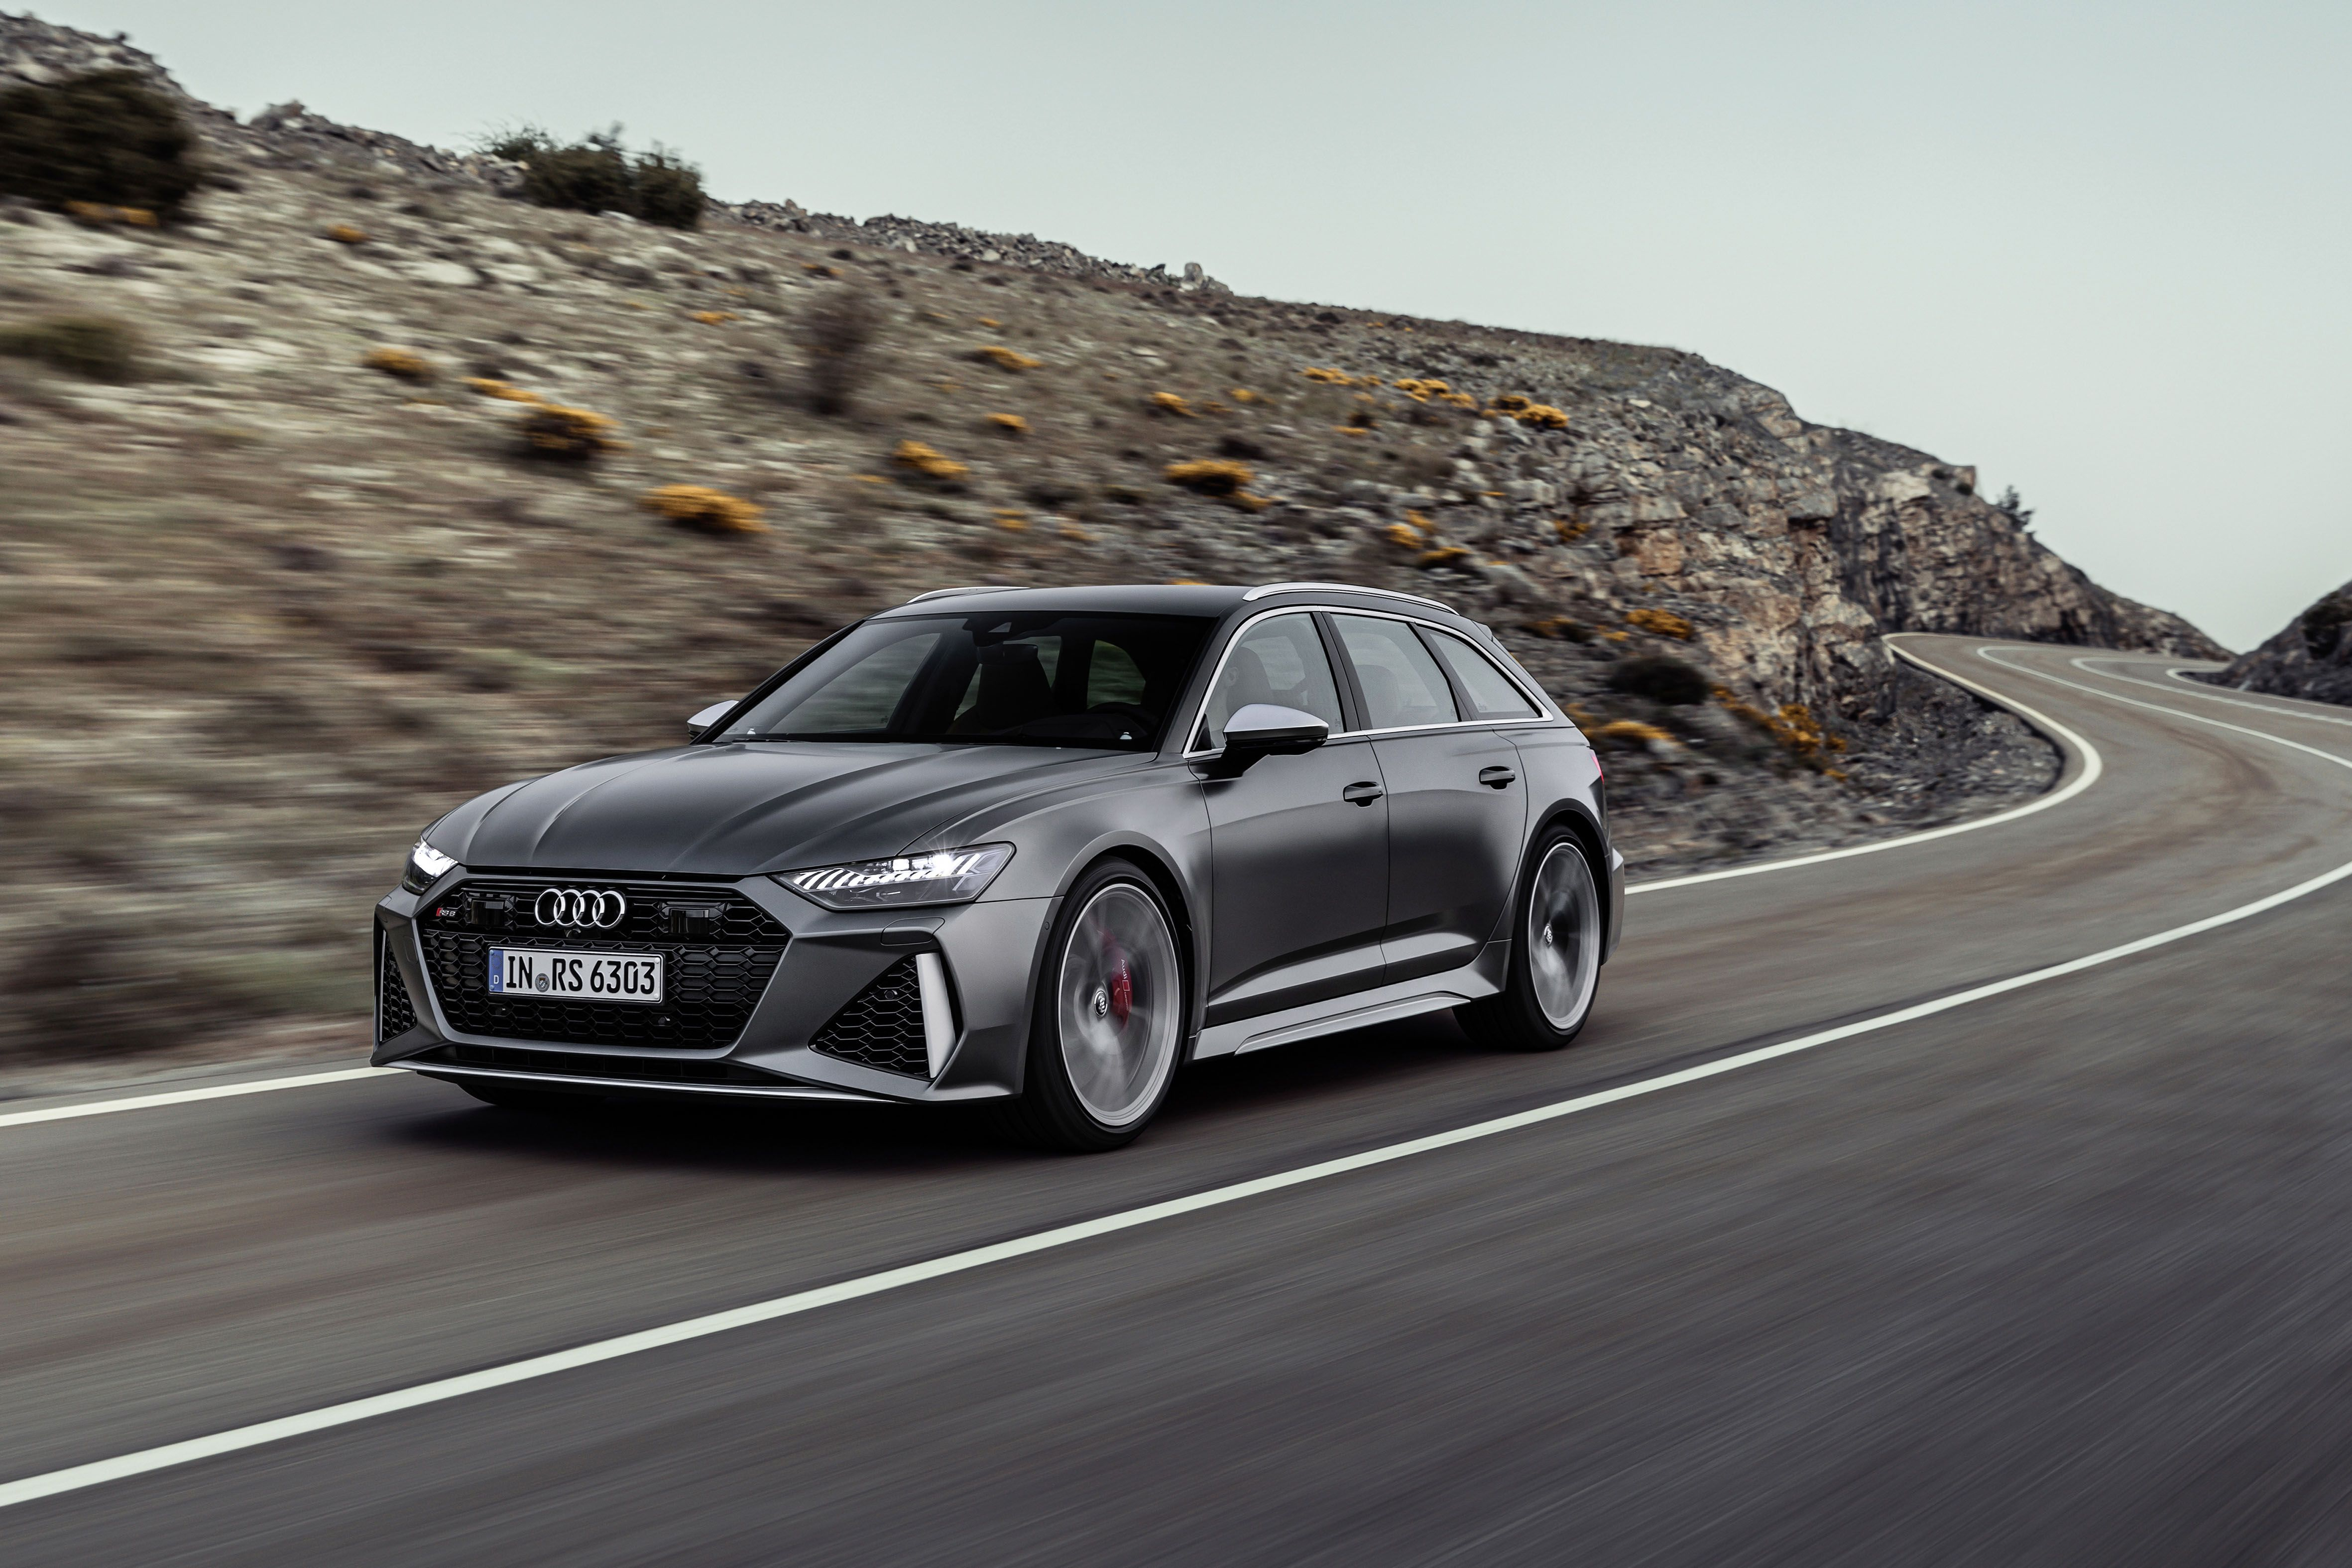 The 2020 Audi Rs6 Avant Is One Of The Hottest Wagons Ever And Finally Coming To The U S Top Speed Audi Rs6 Audi Wagon Audi Rs